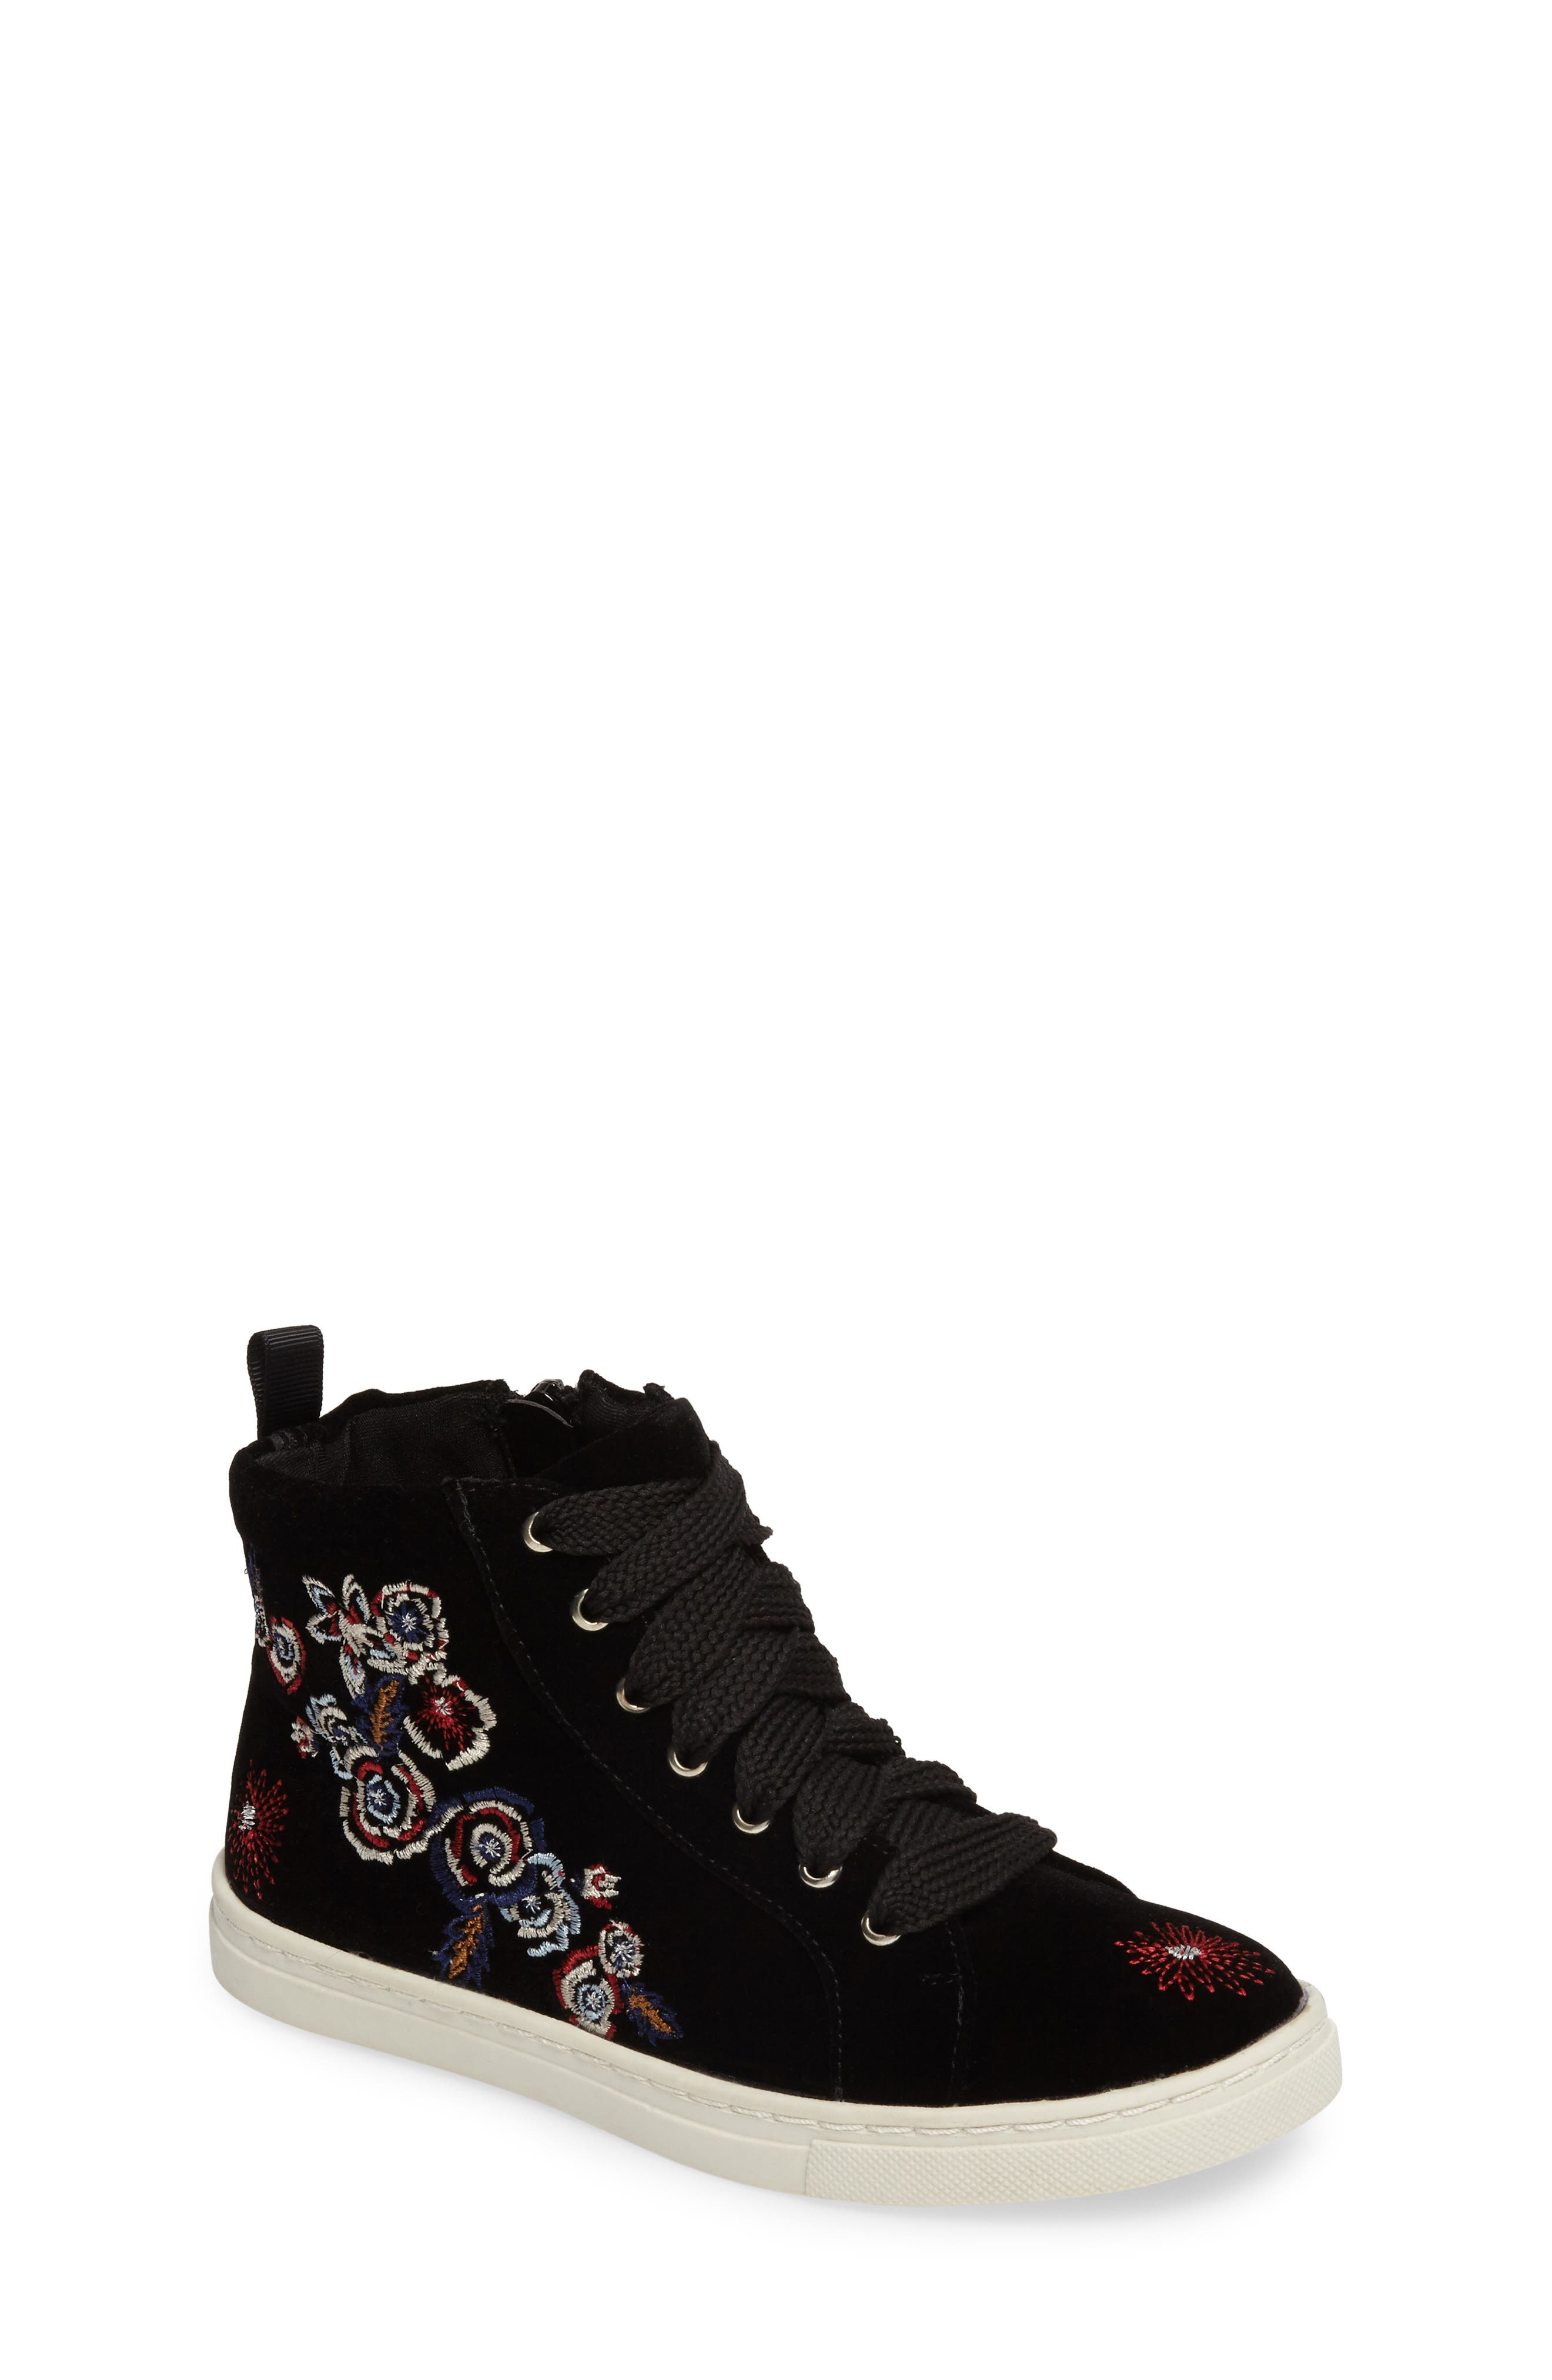 Zowen Embroidered High Top Sneaker,                         Main,                         color, 003